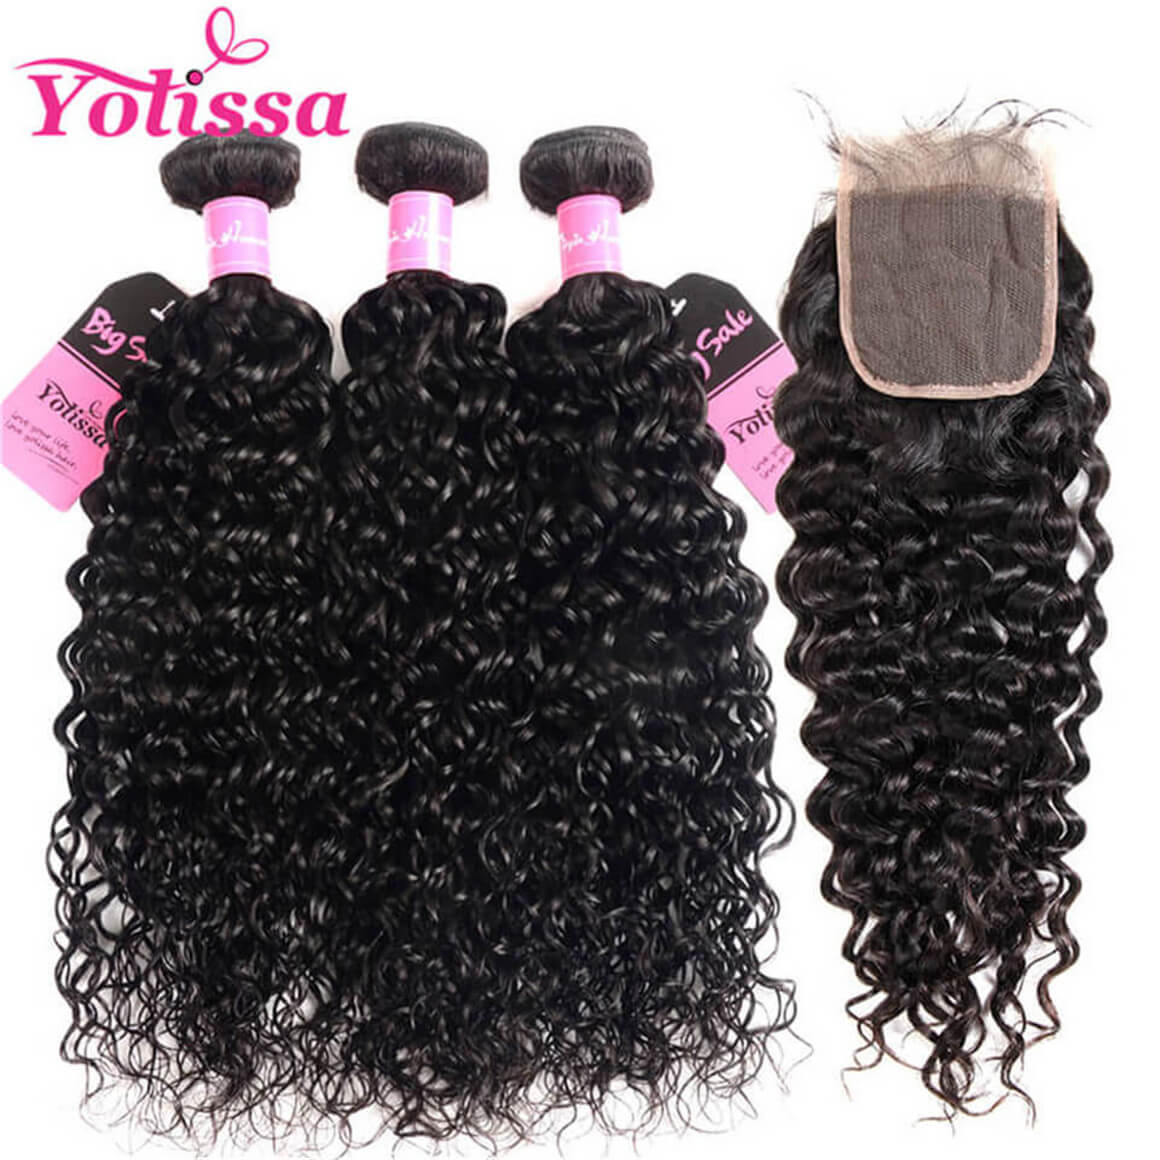 Wet And Wavy Water Wave Hair Bundles With Closure